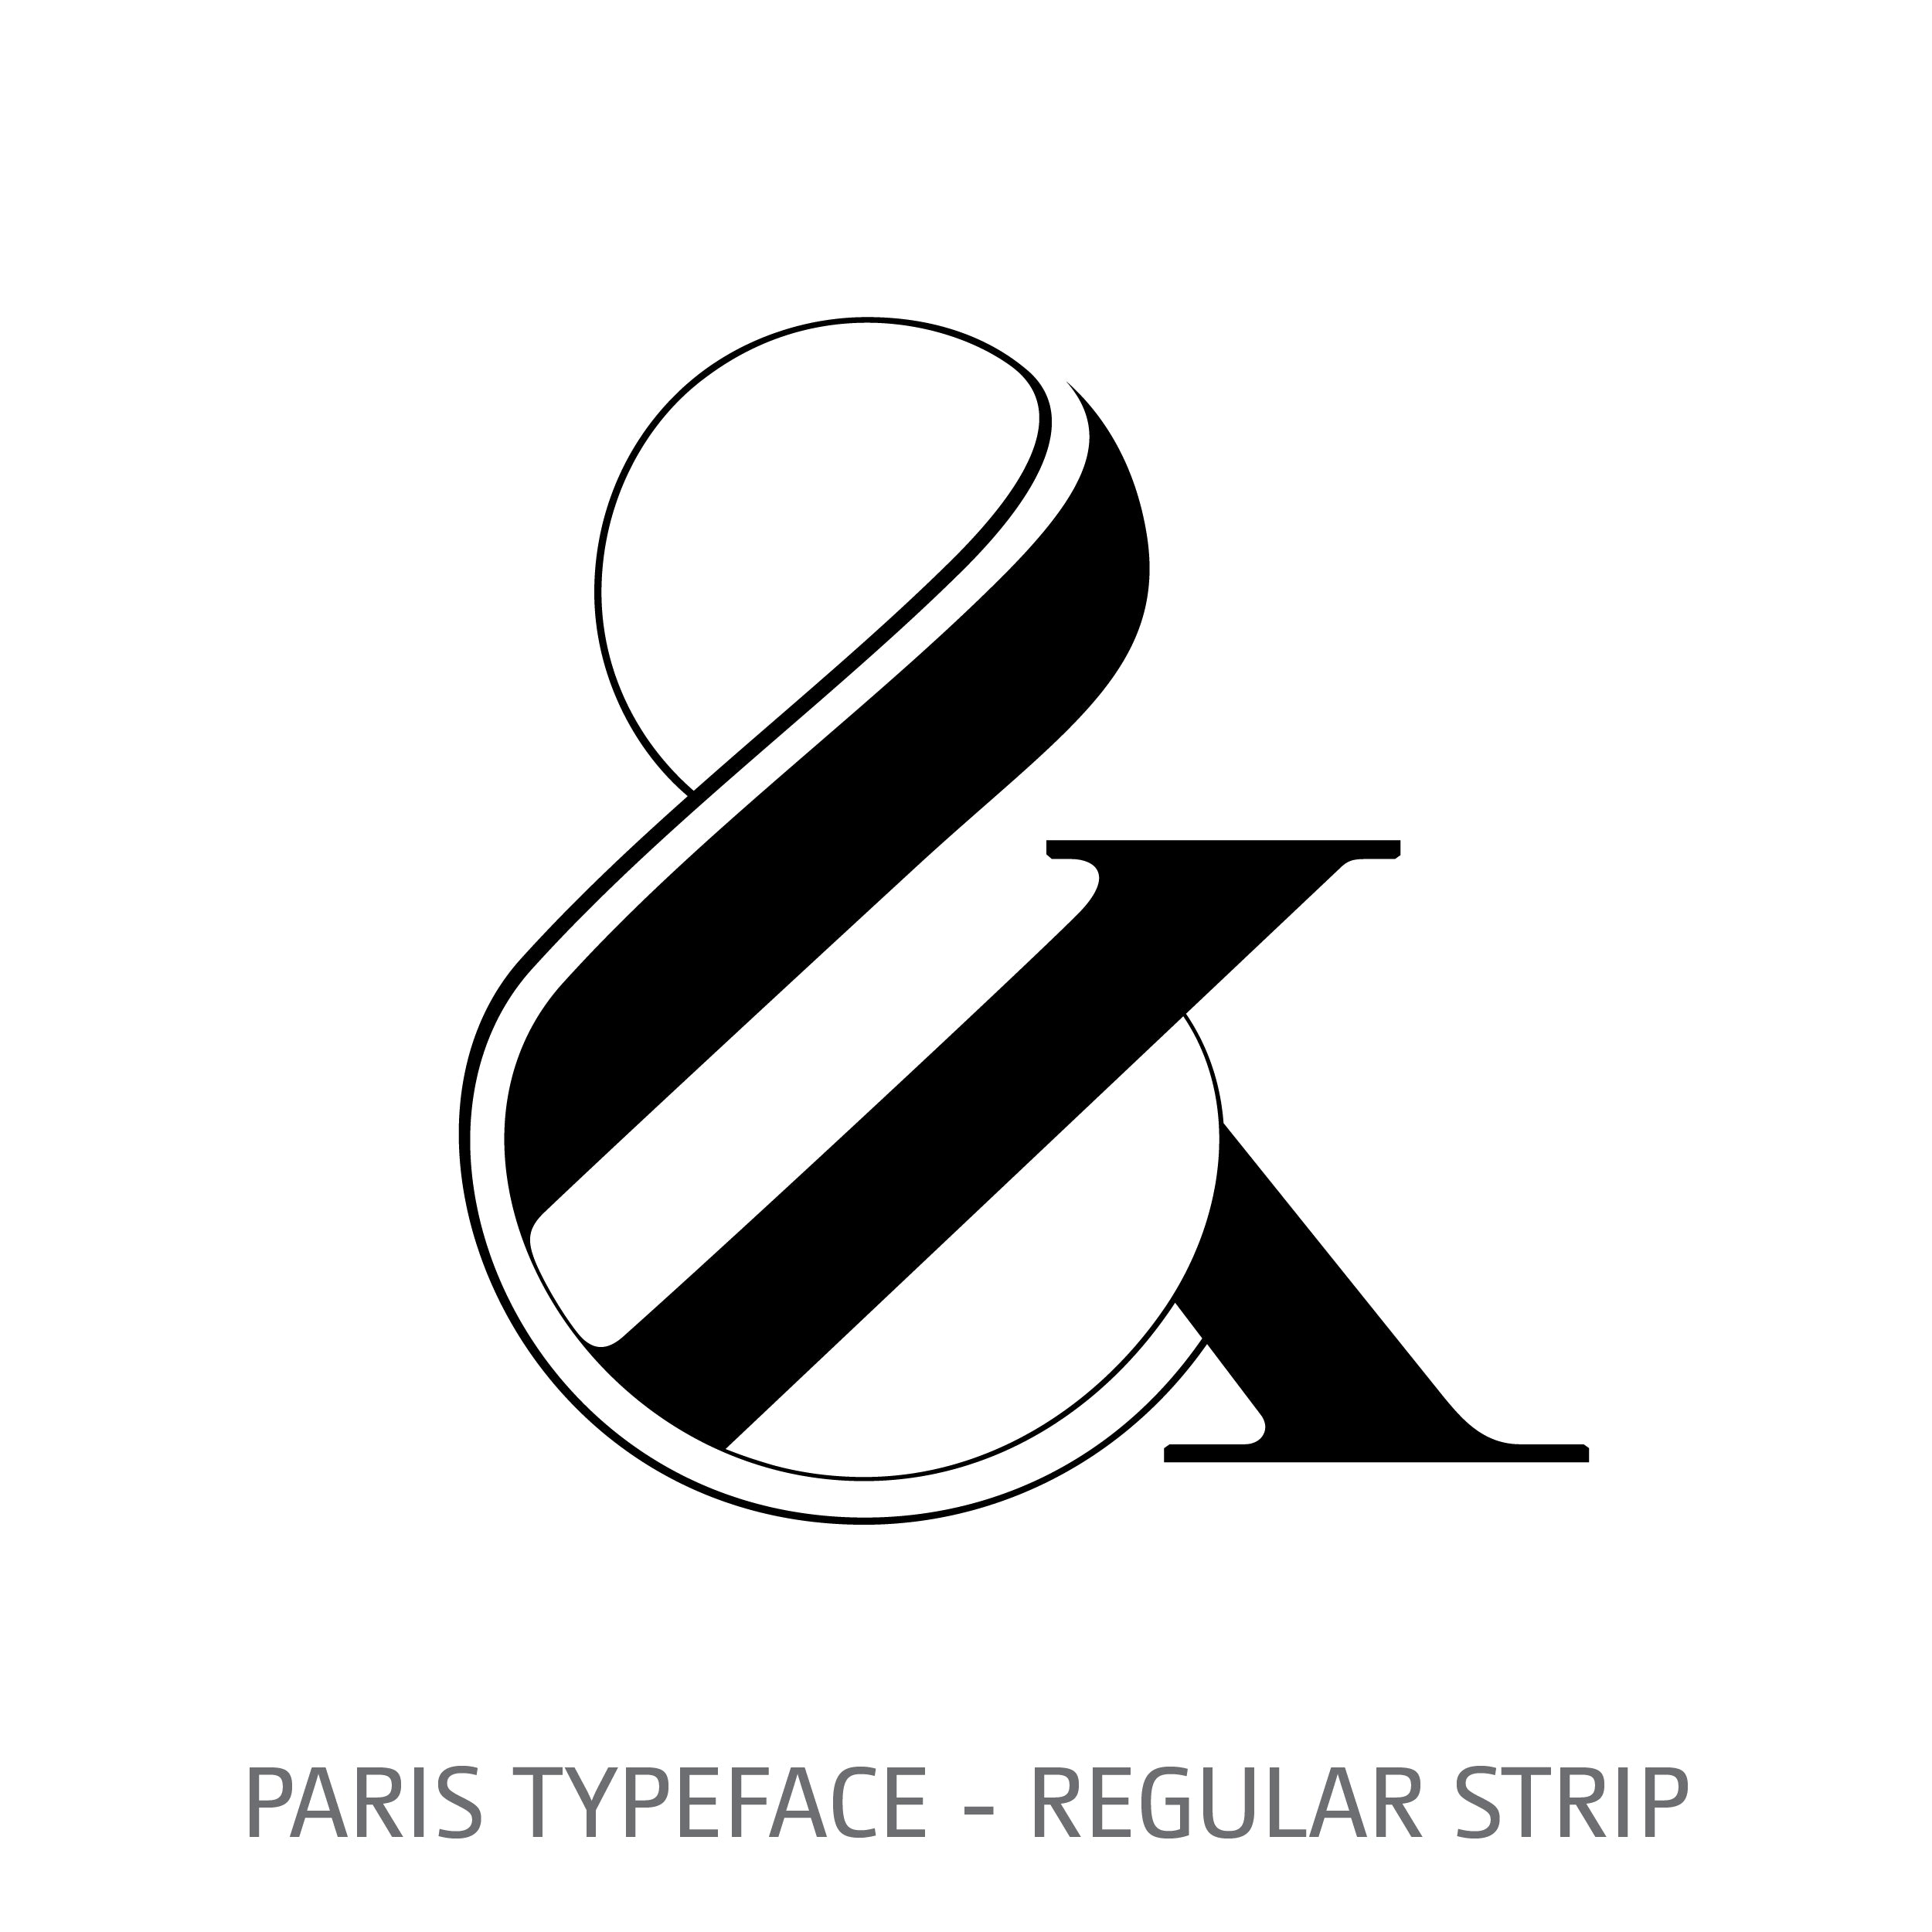 Paris Typeface Regular Strip Style